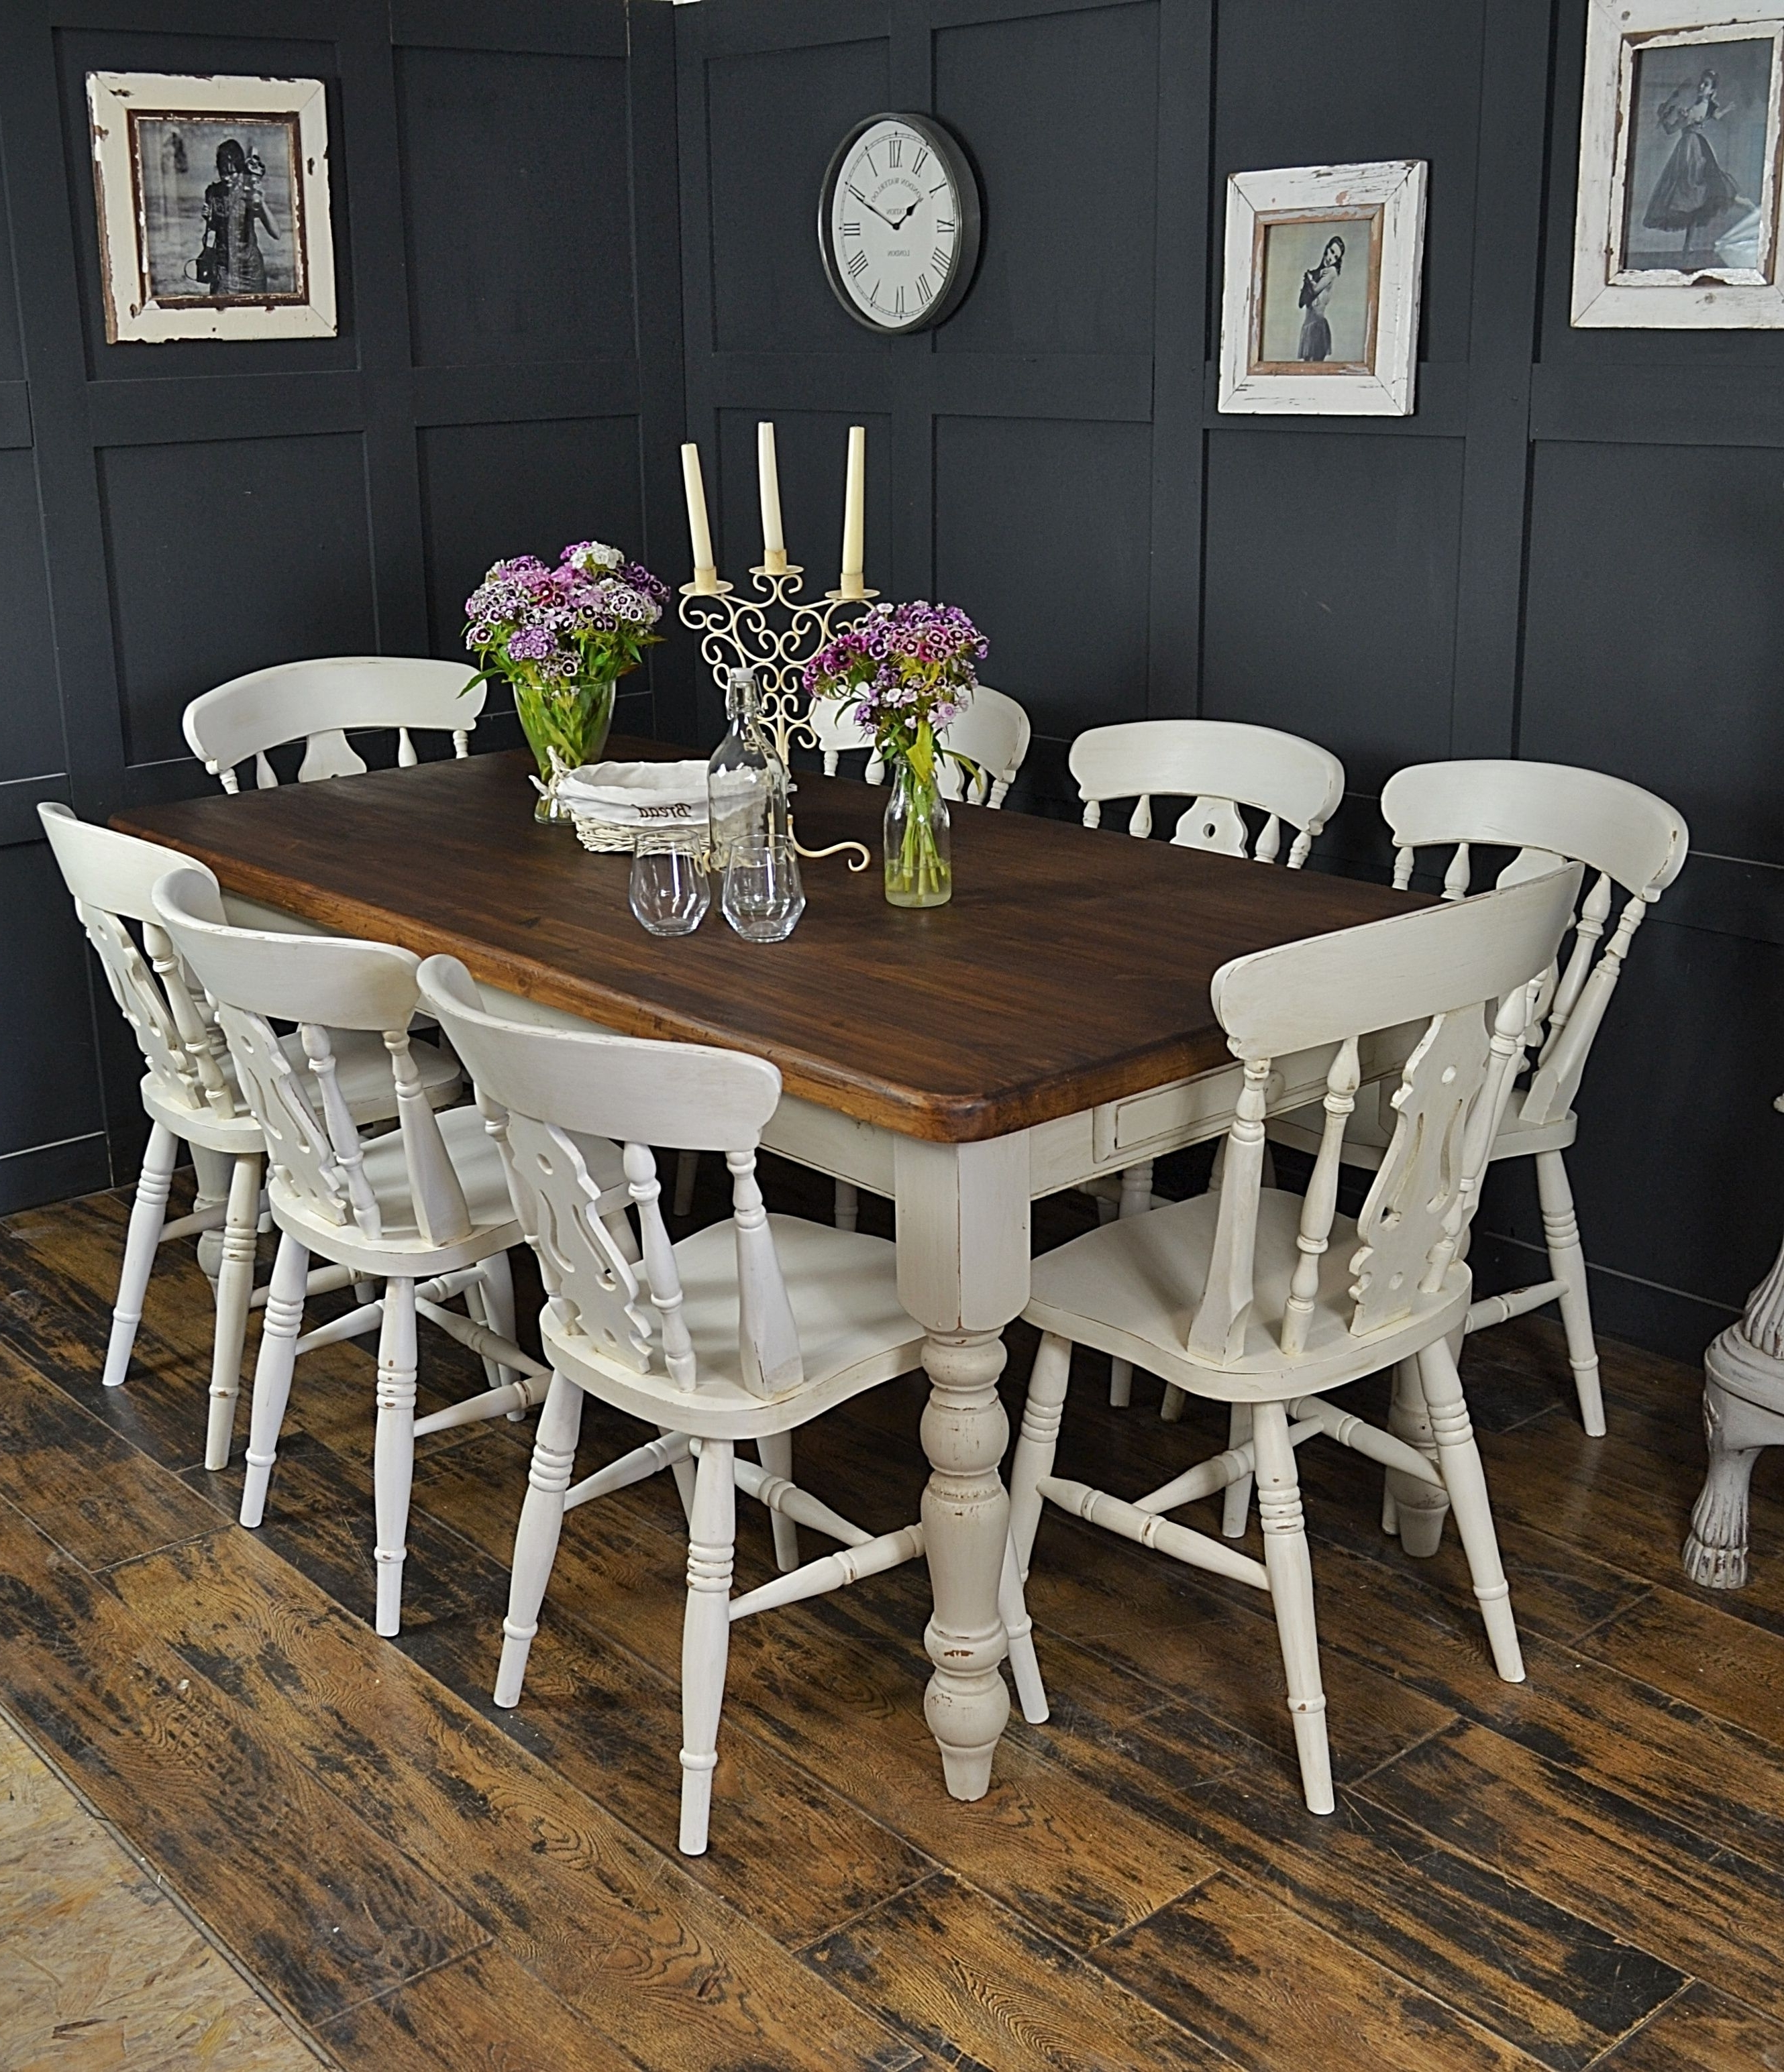 Latest Dine In Style With Our Fabulous 8 Seater Farmhouse Set, Painted In Inside White Dining Tables 8 Seater (View 6 of 25)